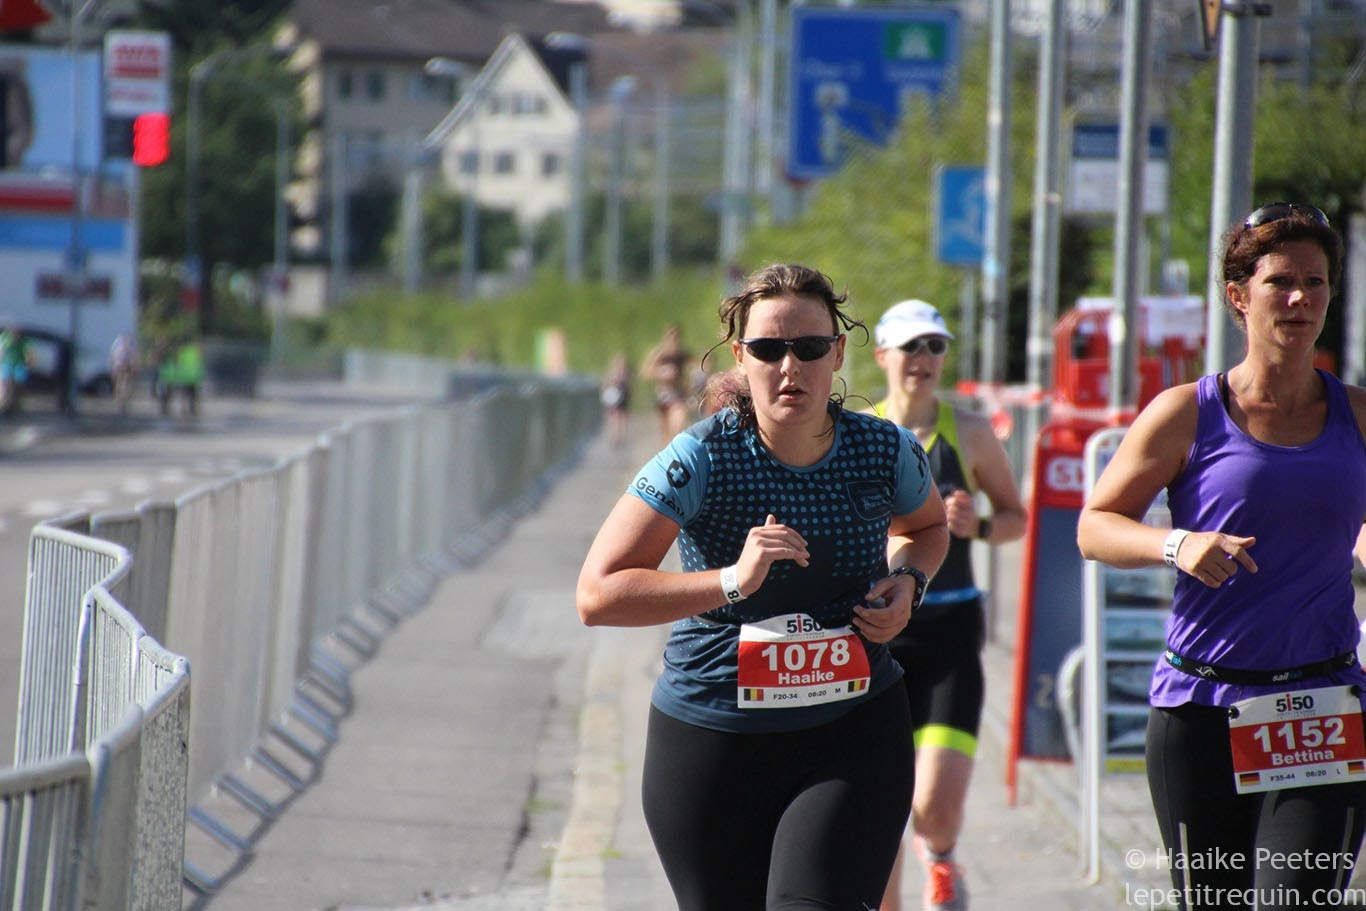 Short triathlon Zürich 2017 (Le petit requin)